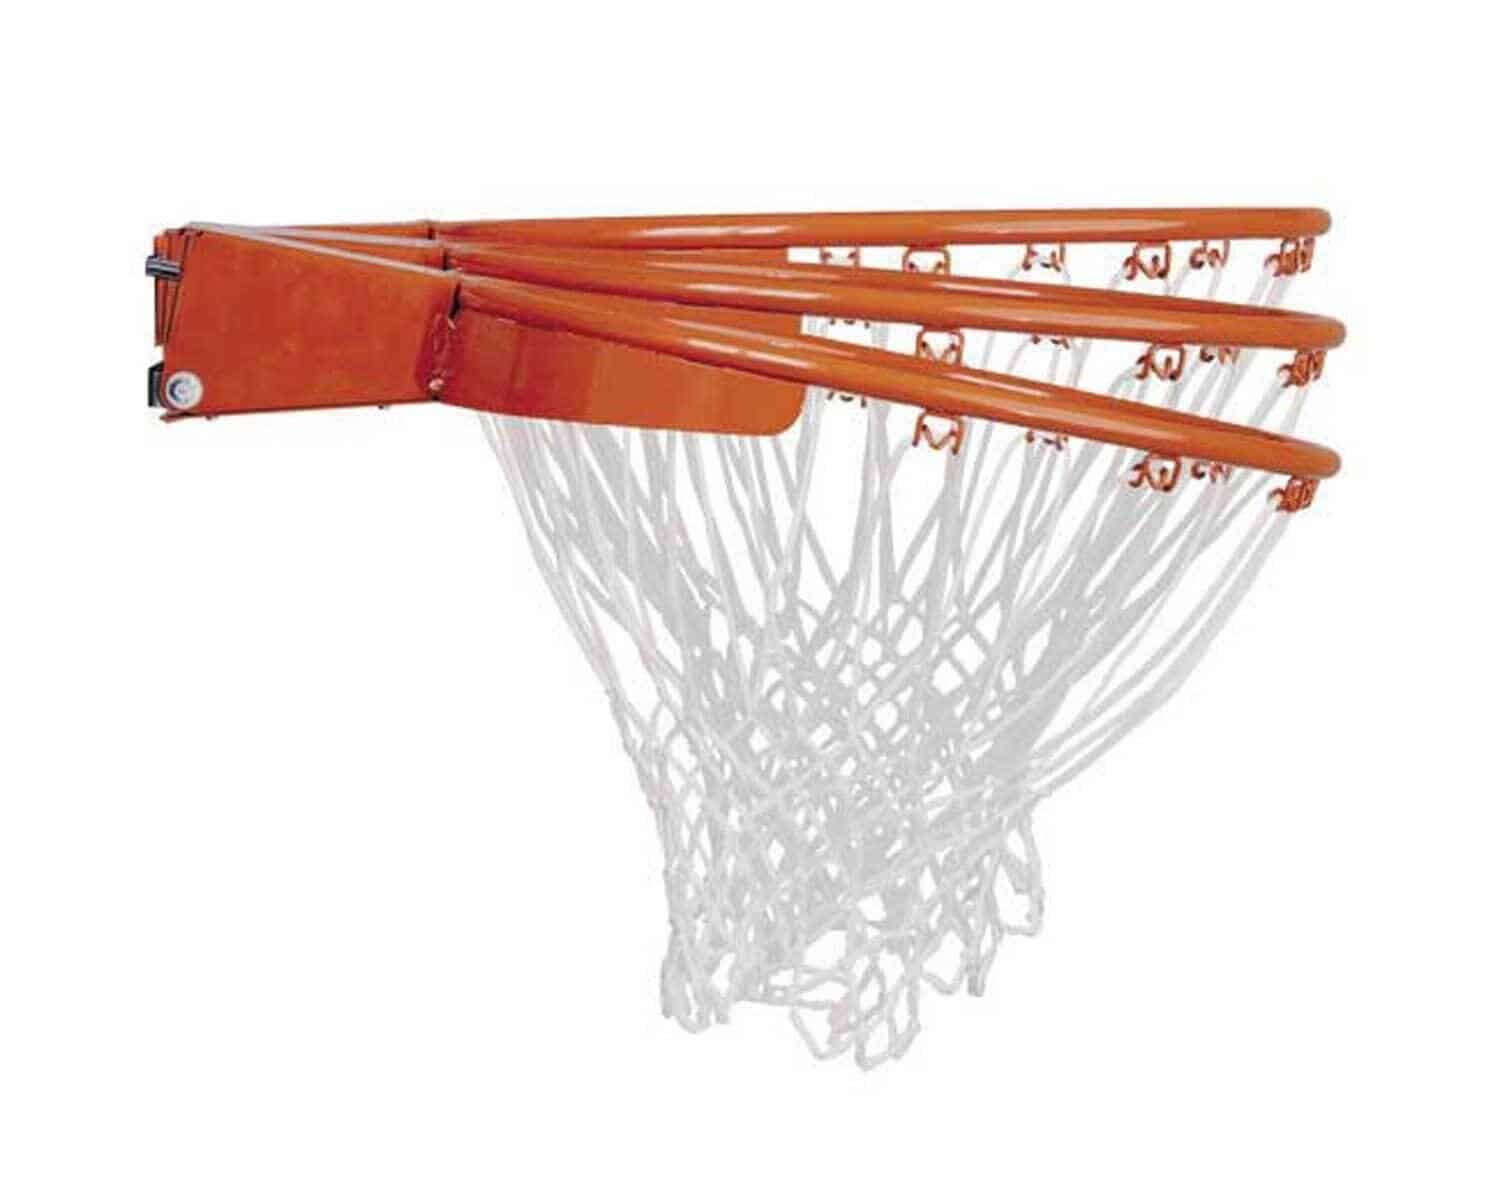 many modern rims offer springs to absorb force from dunks